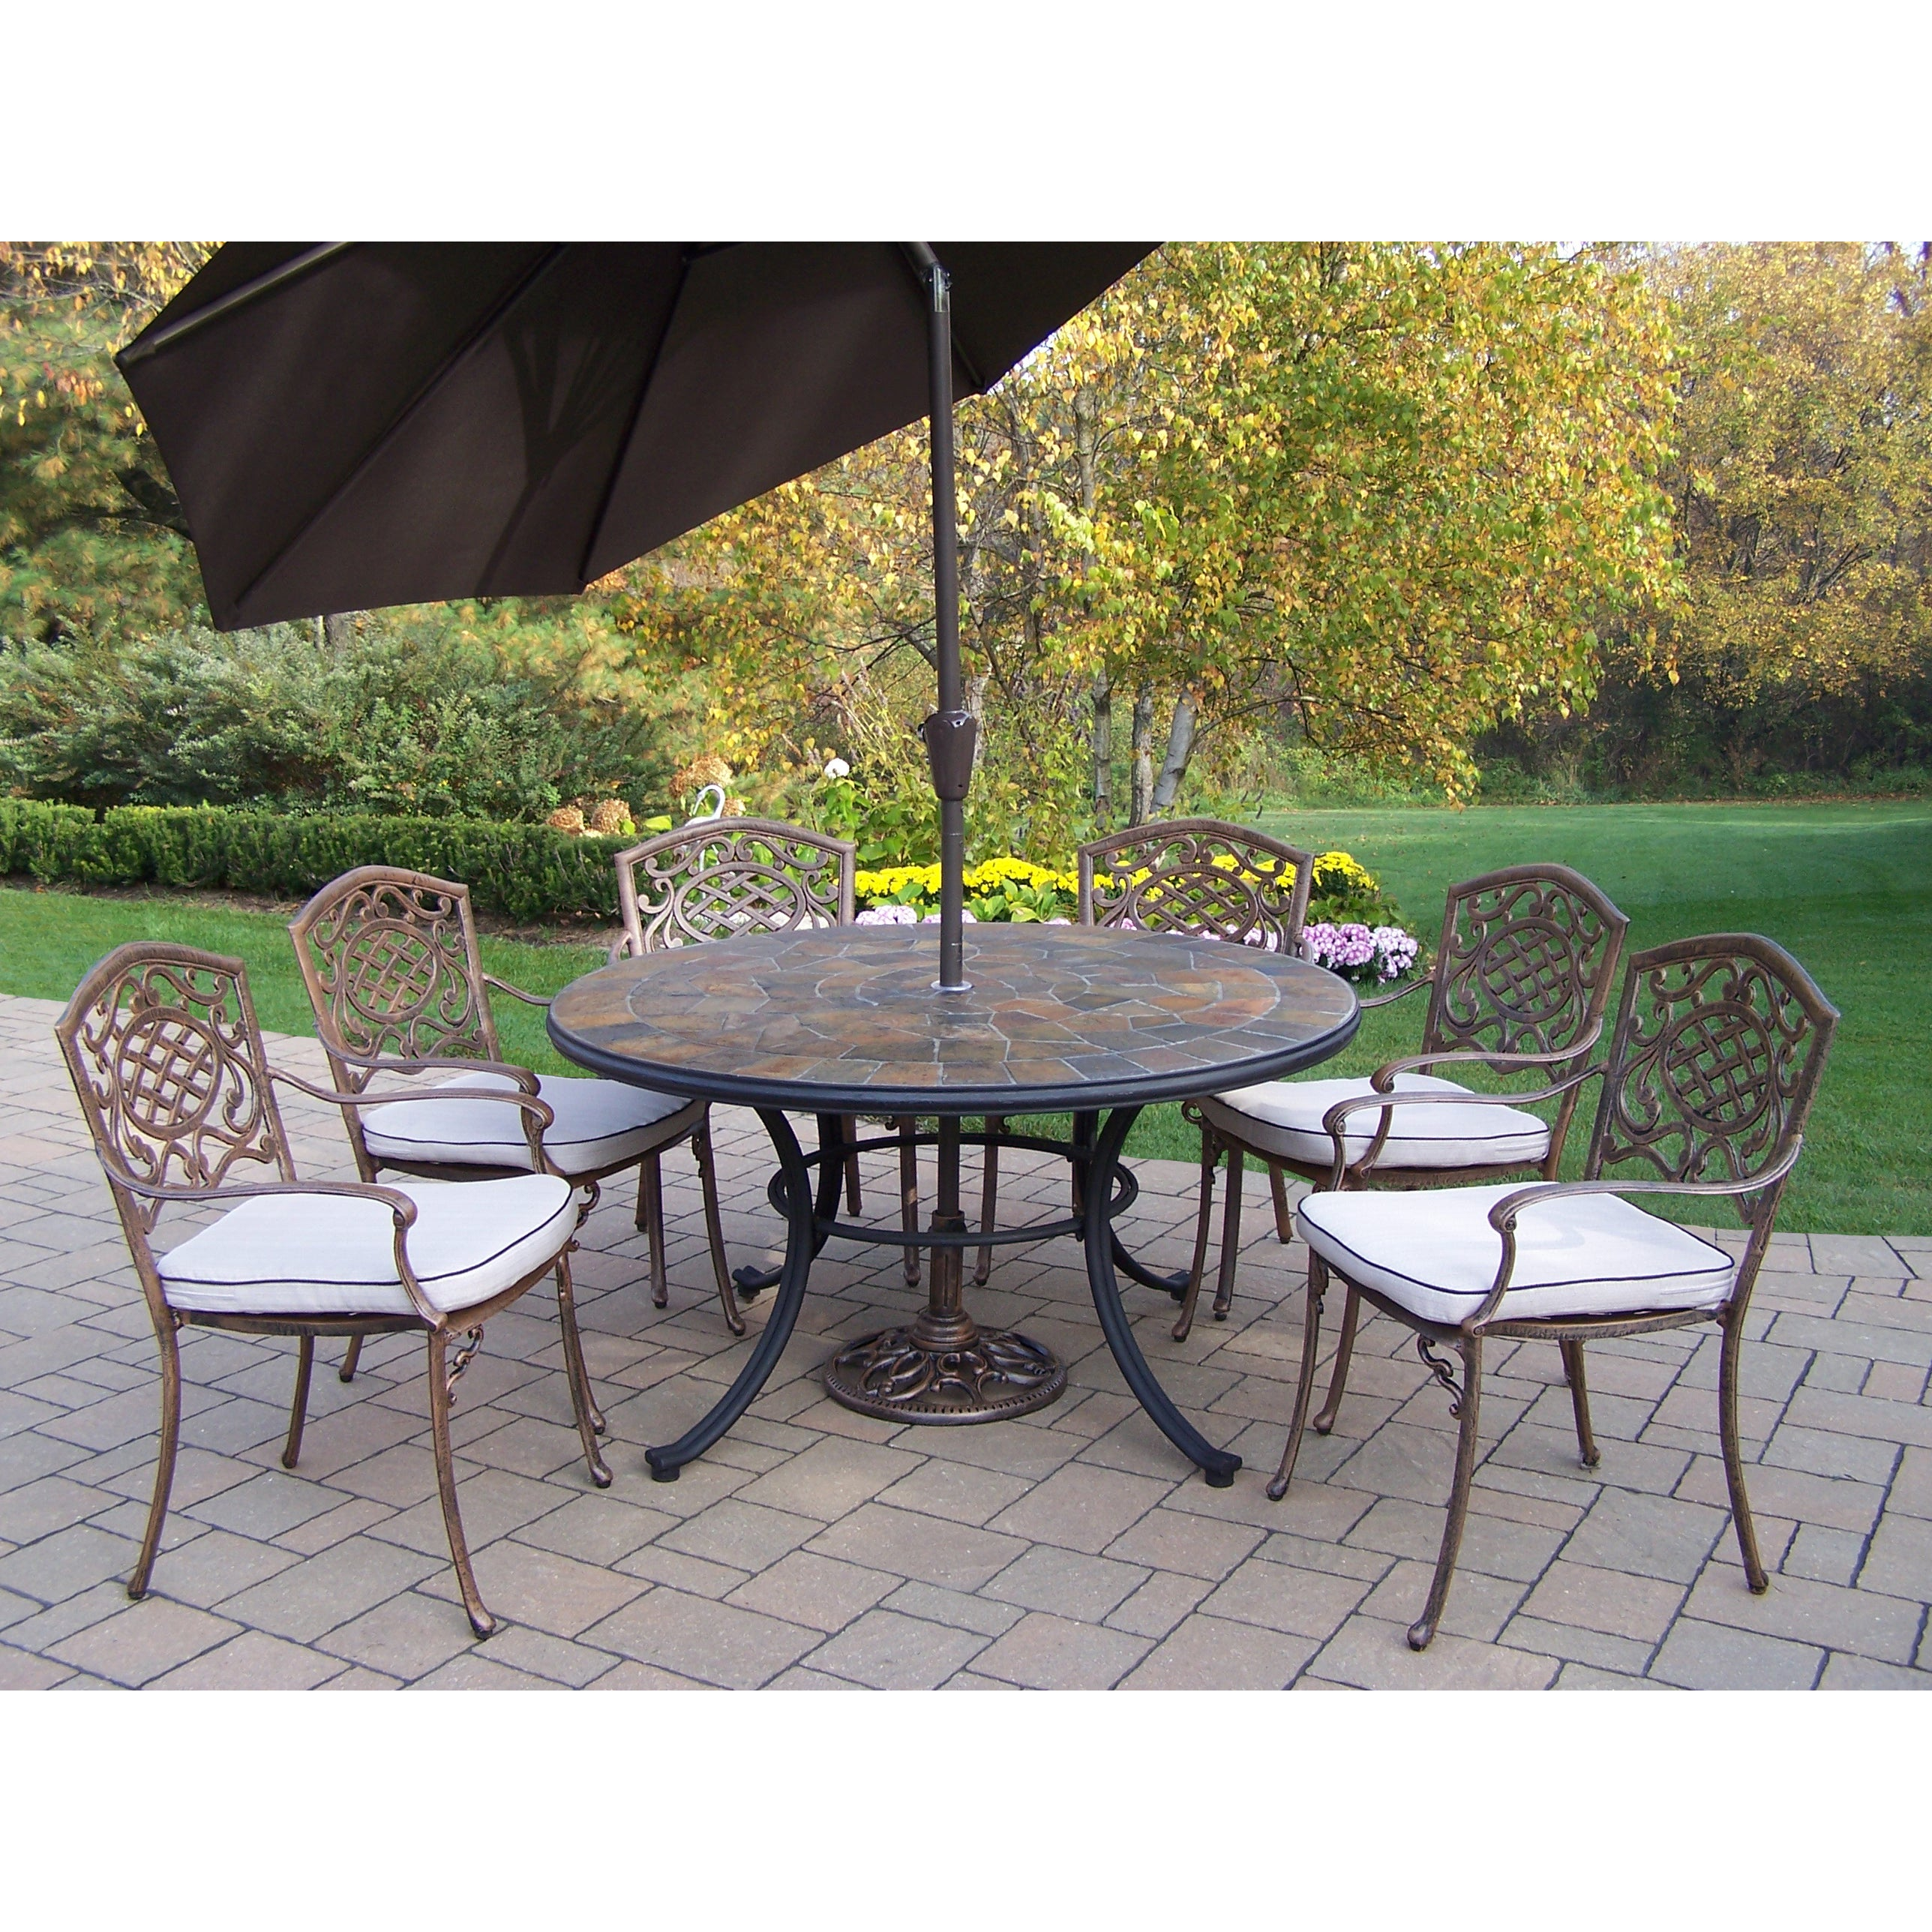 9 Pc Dining Set With Stone Top Table 6 Chairs Umbrella And Stand